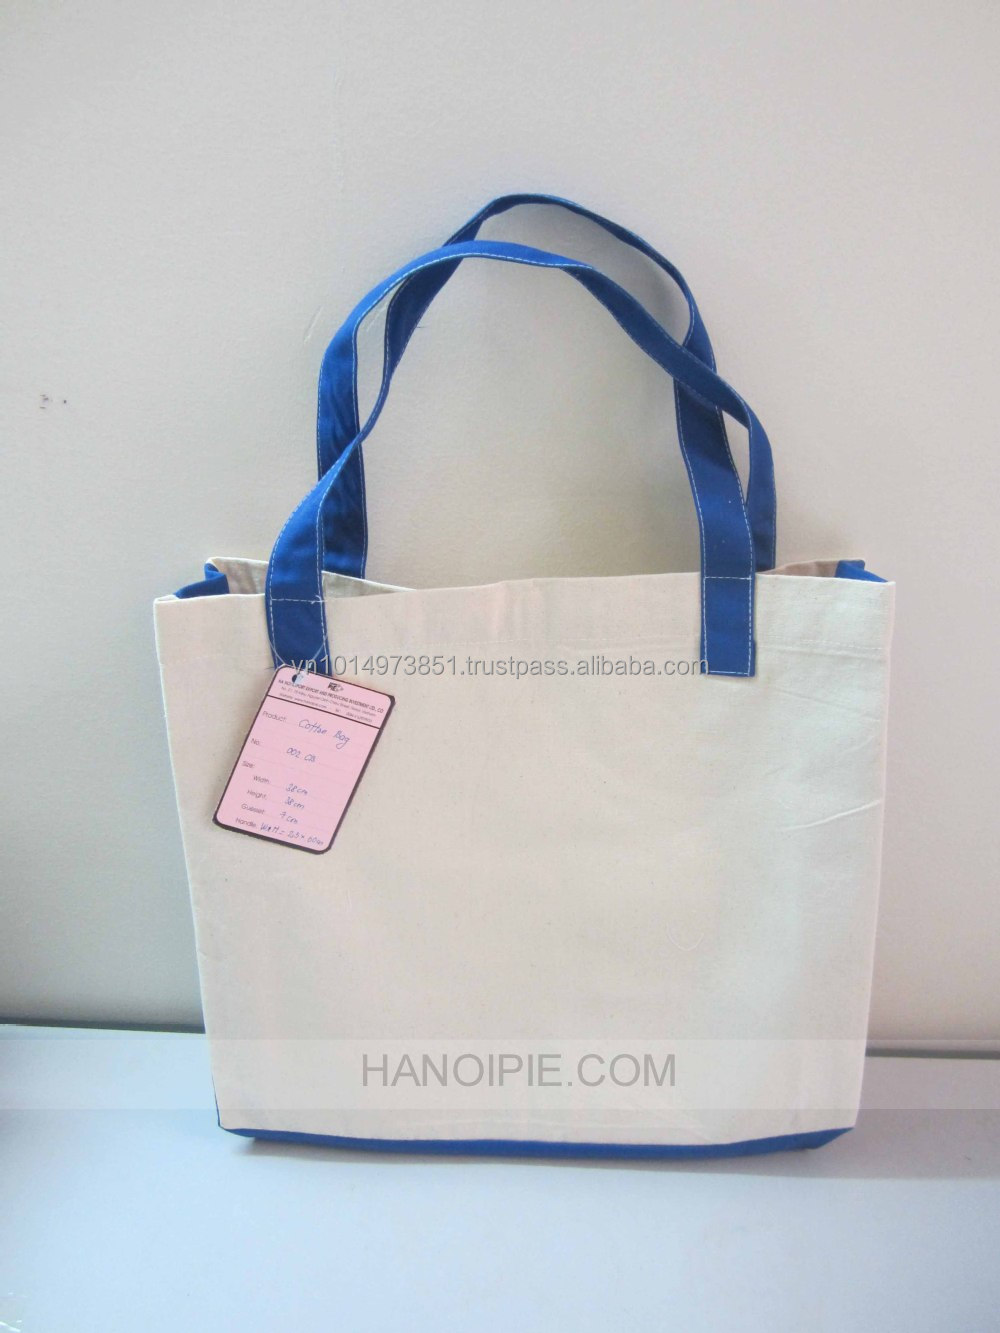 Promotional Cotton Handle Bag | Lovely Shopping Handbags